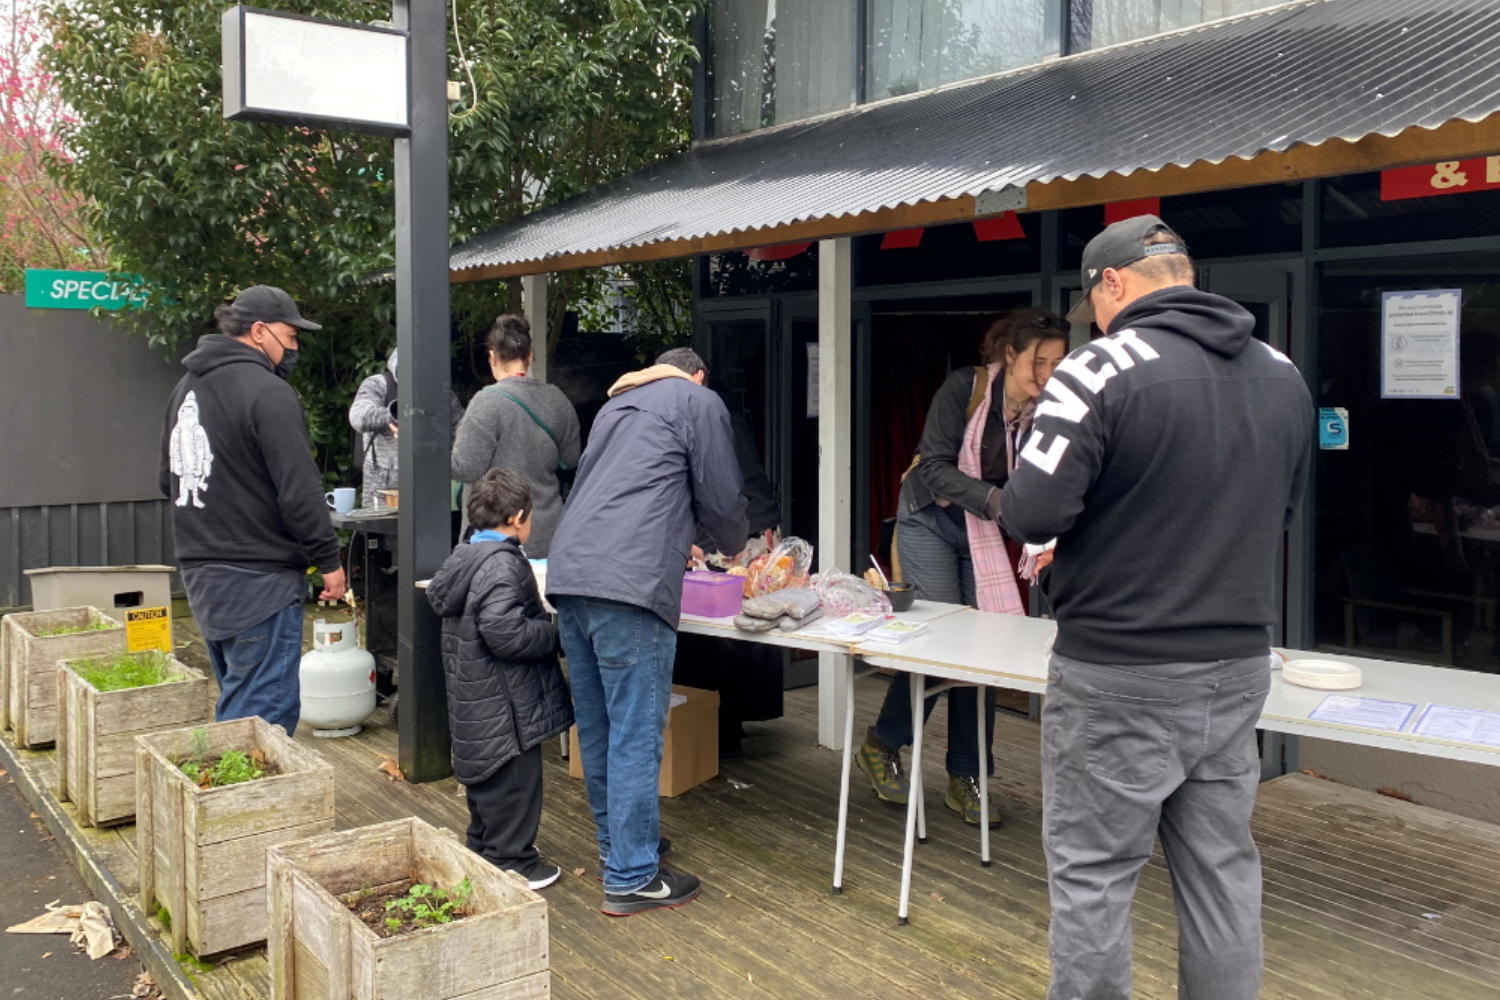 A group of people setting up food on trestle tables outside a motel.